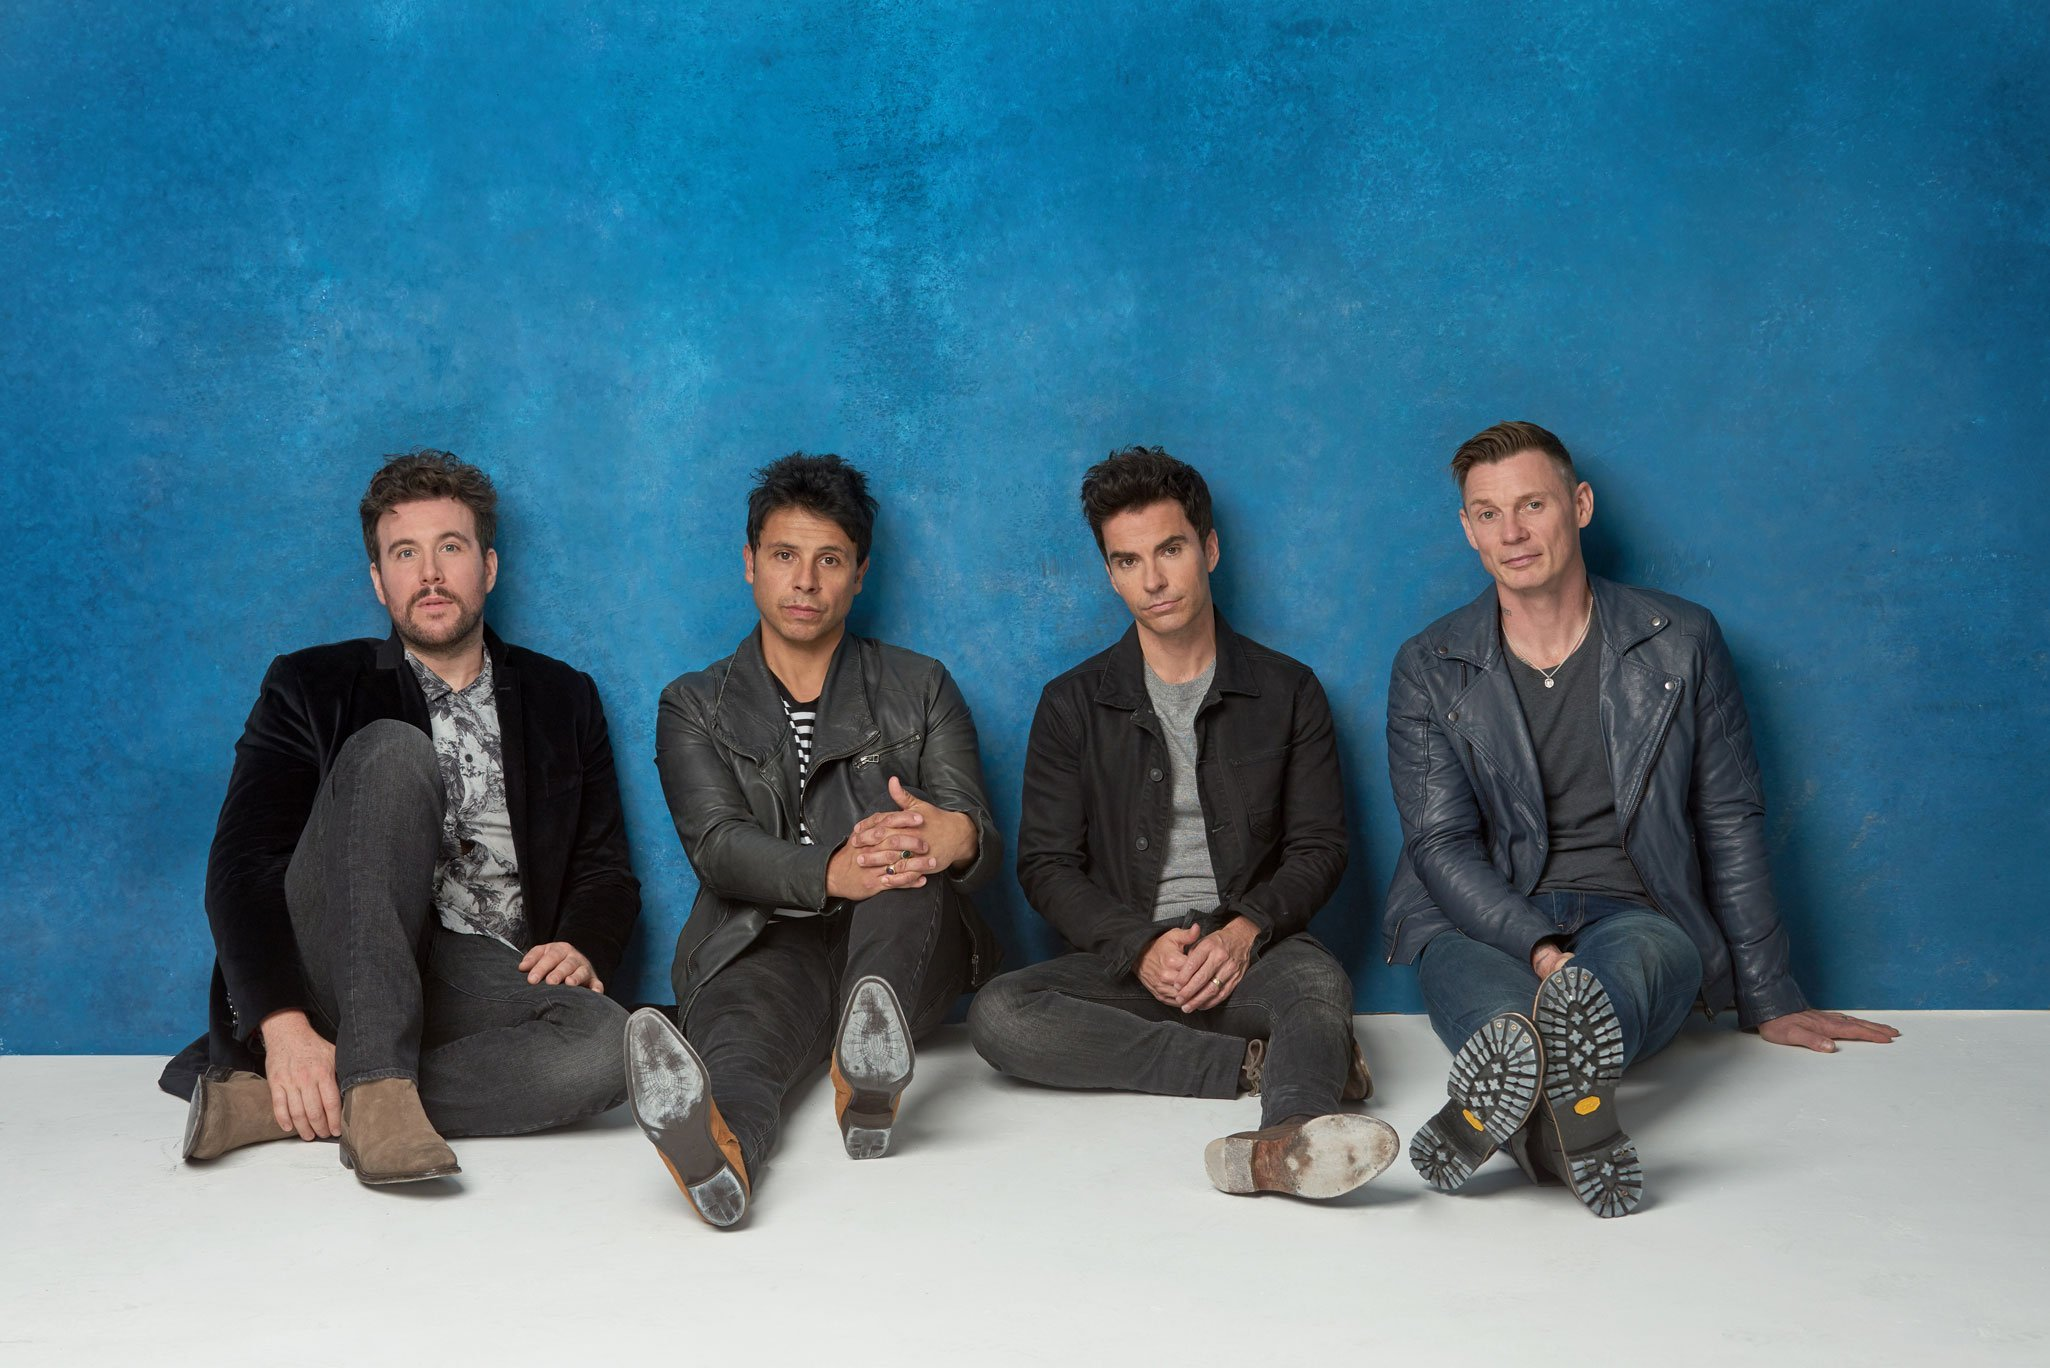 STEREOPHONICS announce major UK arena tour for spring 2020